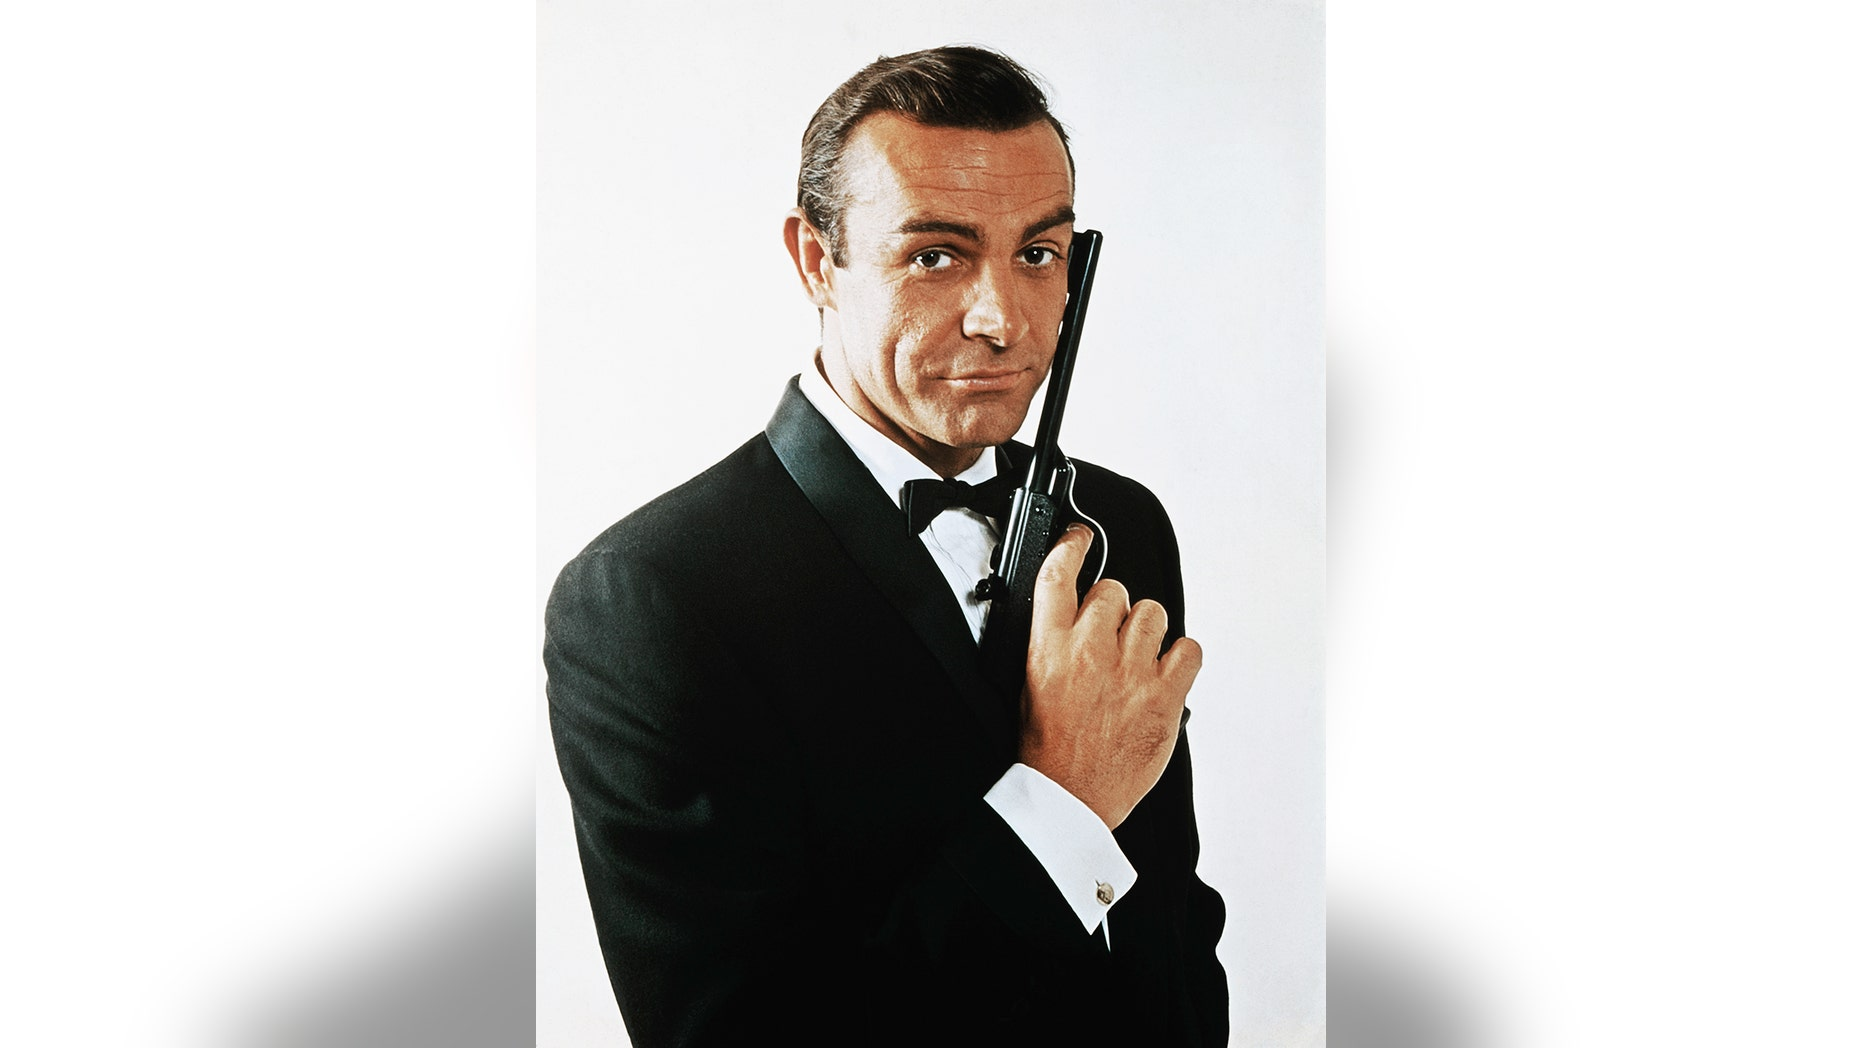 James Bond won't be played by a female in Hollywood anytime